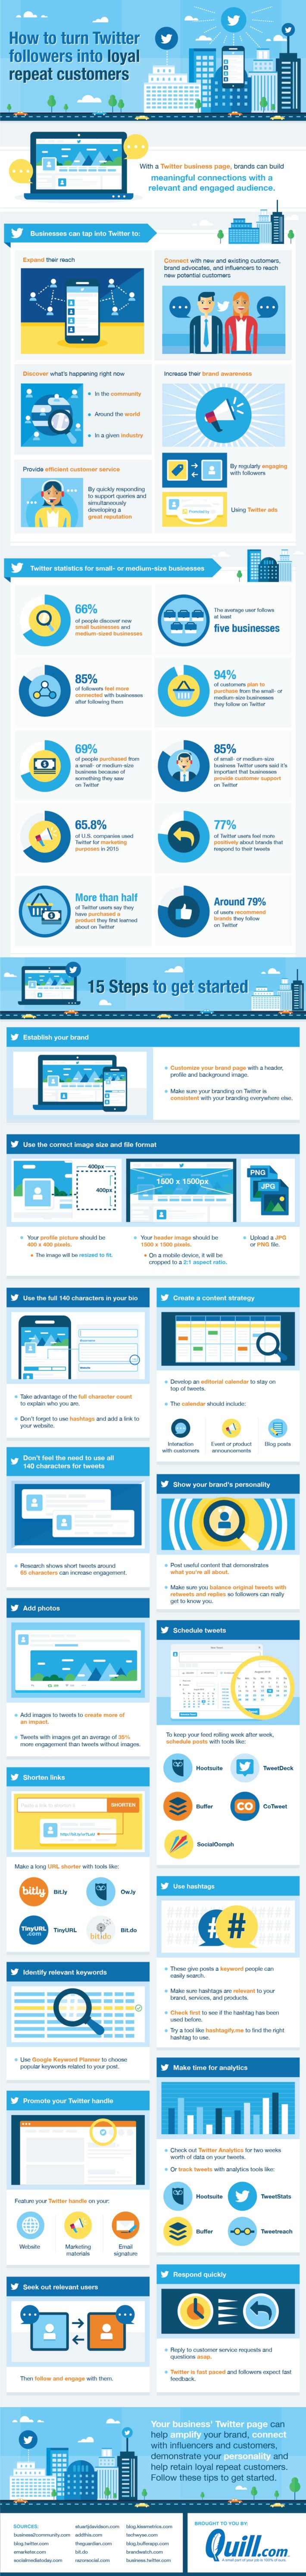 How to Turn Twitter Followers into Repeat Customers [Infographic]